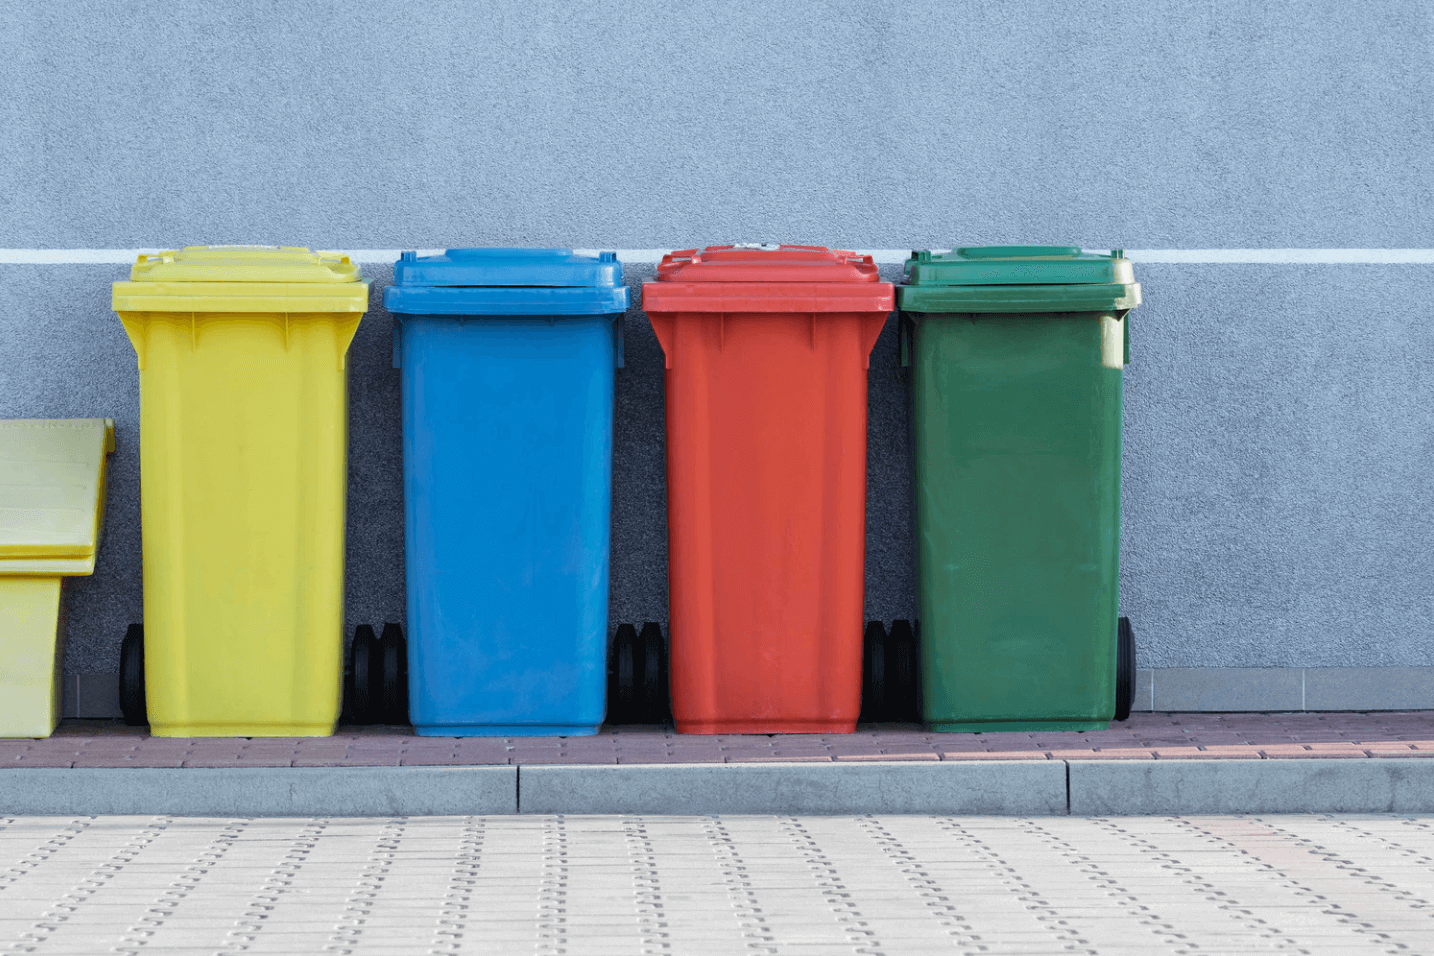 Recycling bins in different colors.